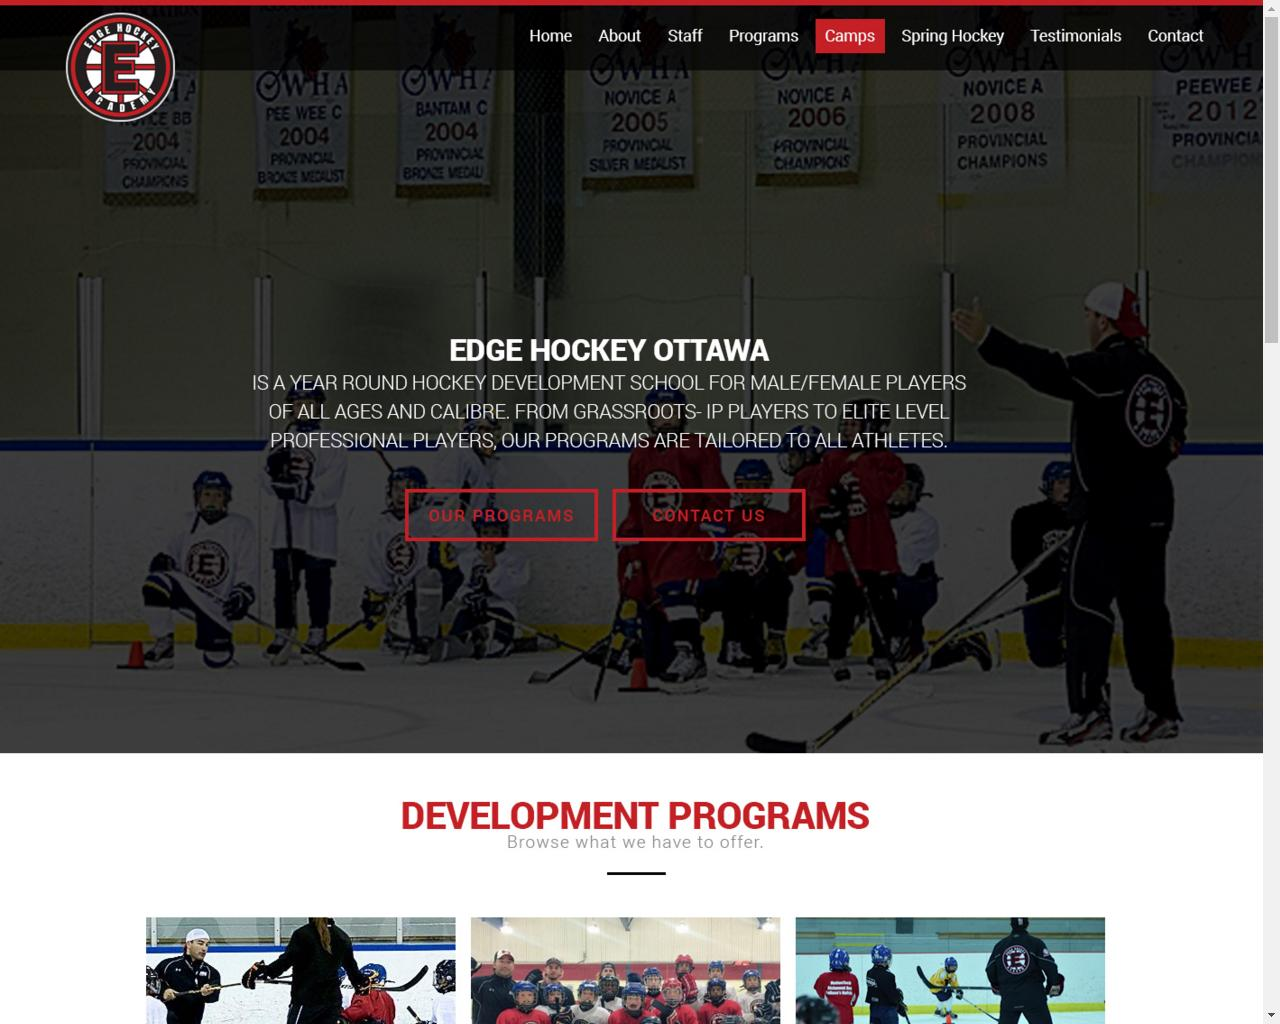 Edge Hockey Ottawa